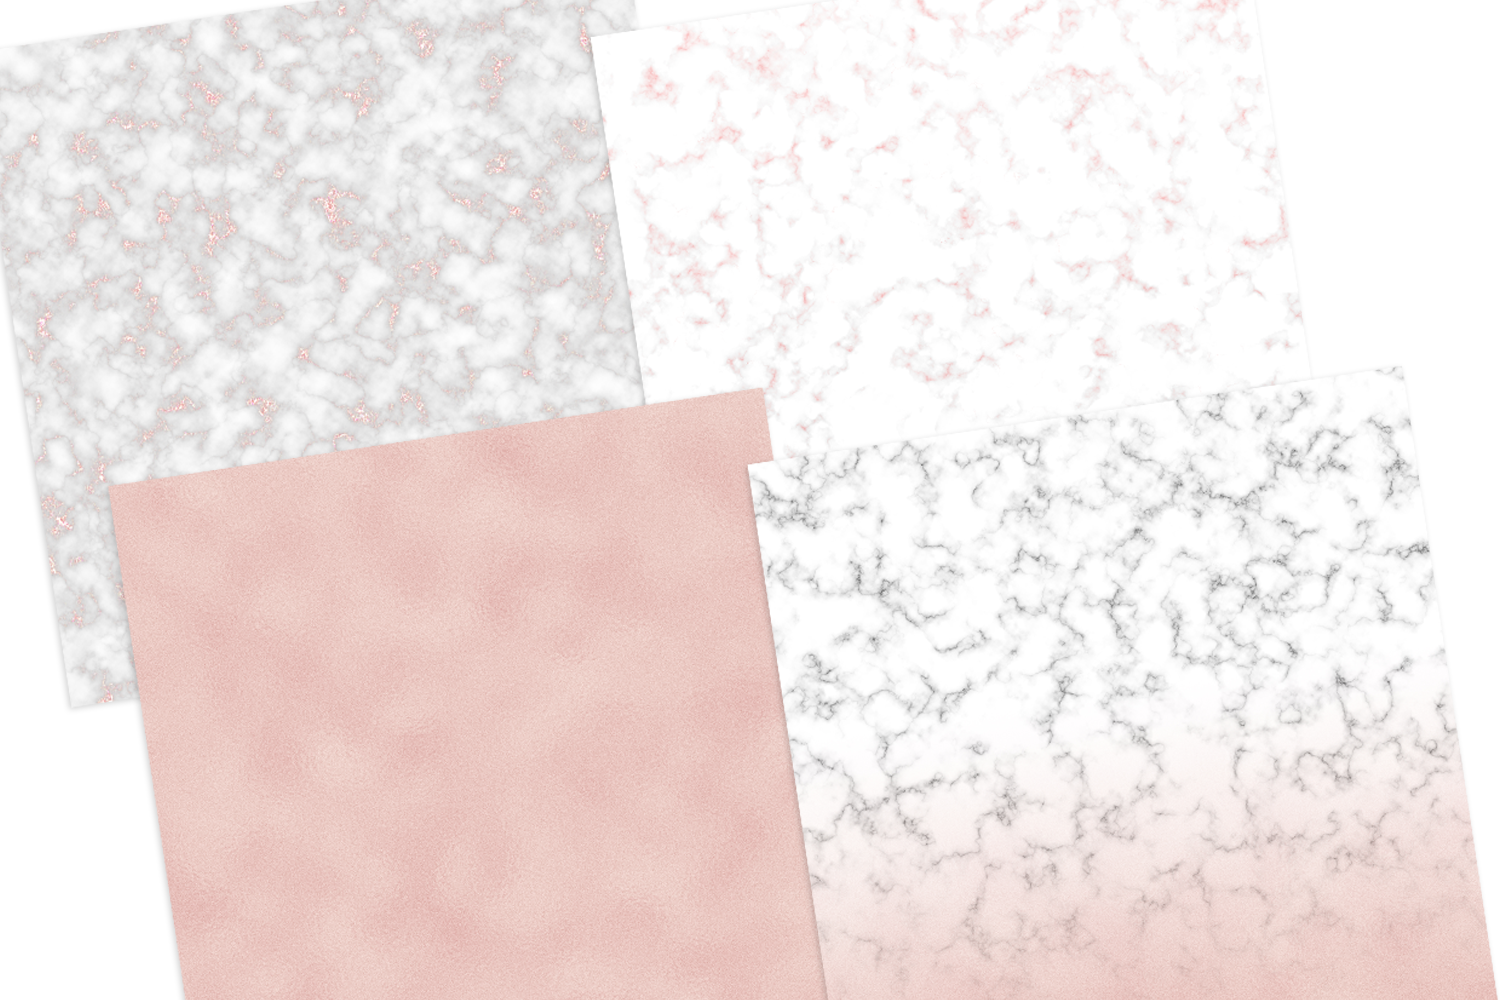 Marble x Rose Gold Texture Digital Papers example image 4